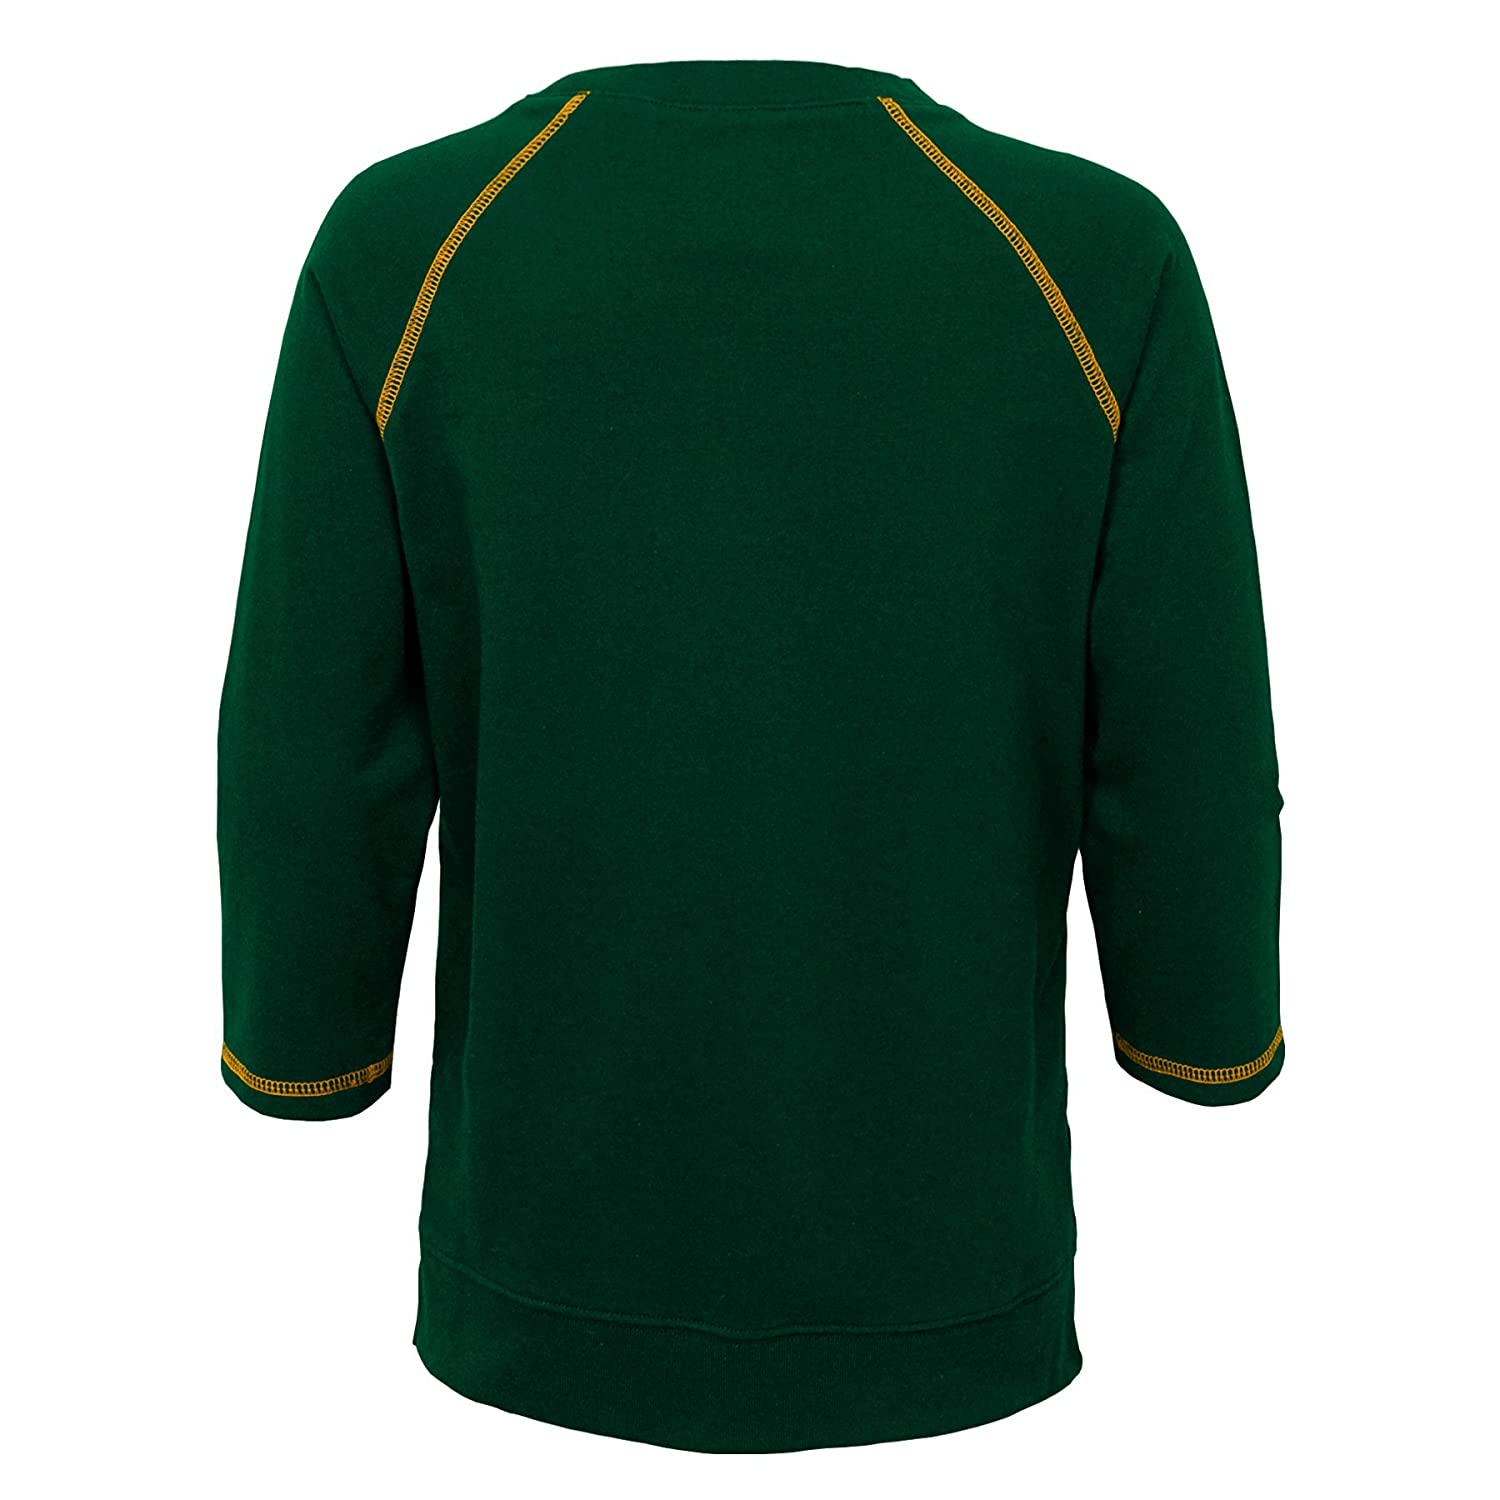 14 Youth Large NFL Green Bay Packers Youth Boys Overthrow Pullover Top Hunter Green